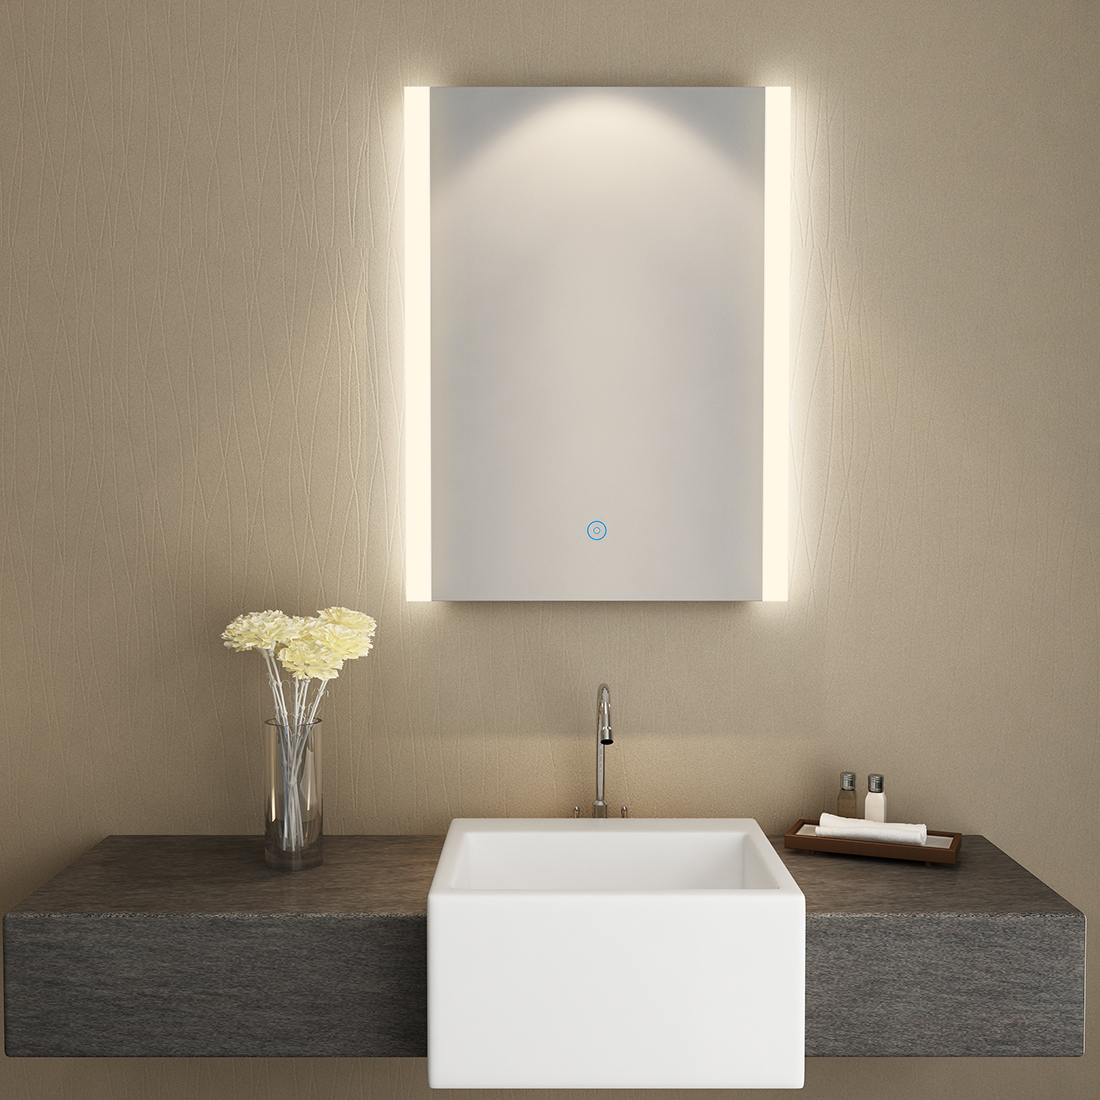 Details About SUNNY SHOWER LED Backlit Bathroom Vanity Mirror Touch Button  Warm White Fogless